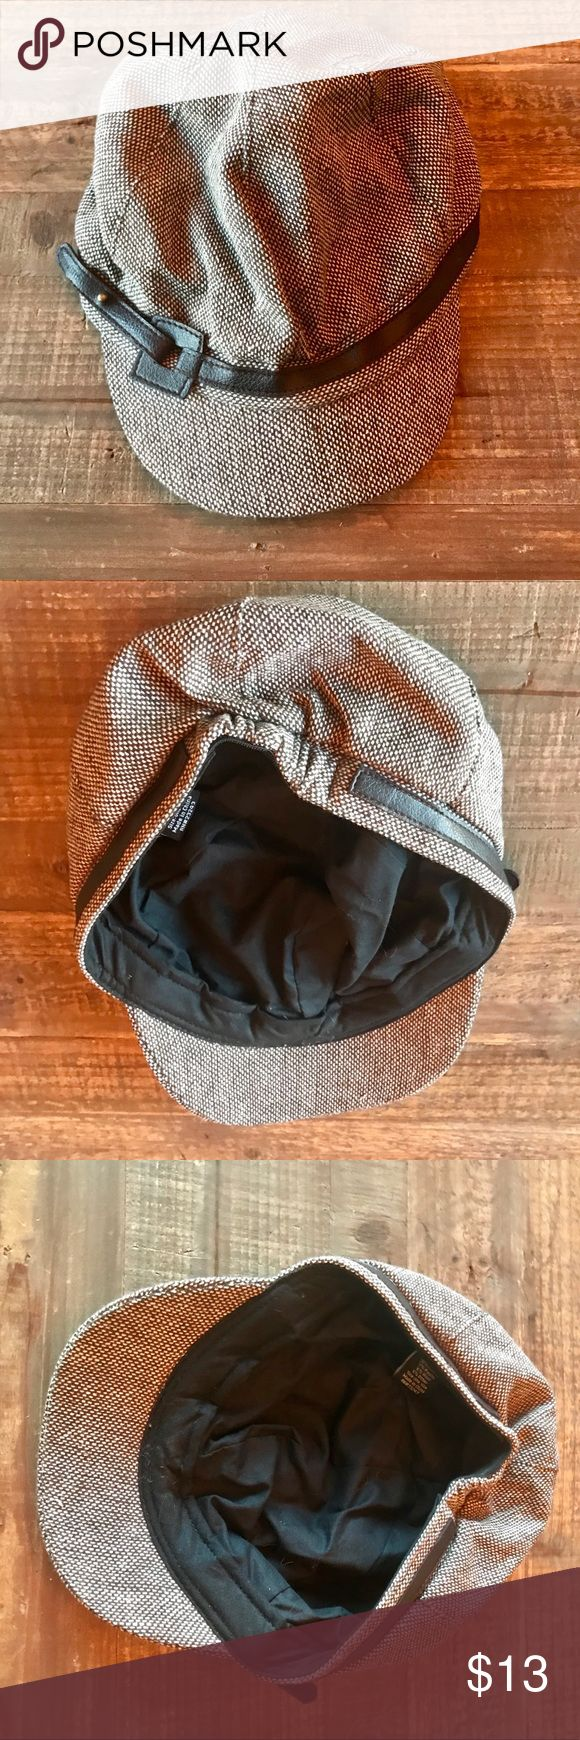 New York & Co Brown twill novelty hat Only worn once, in great condition. New York & Company Accessories Hats